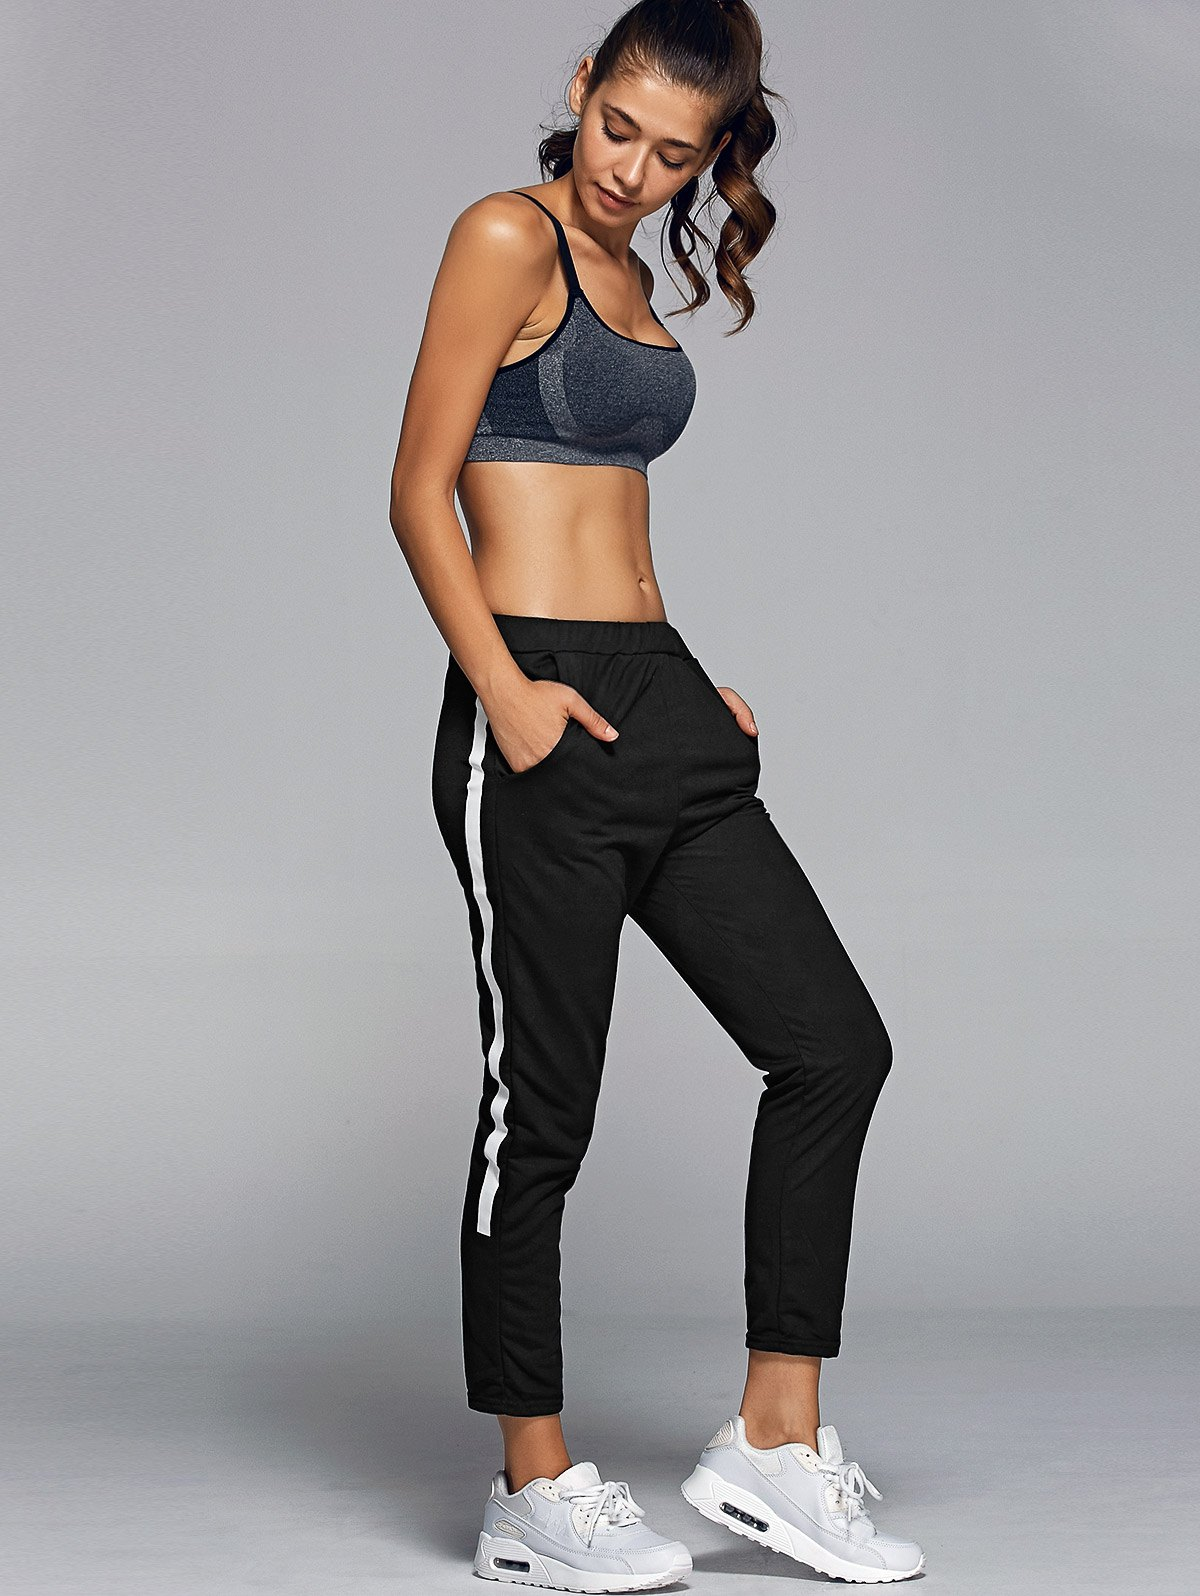 Fitness Fashion Must Have Pants